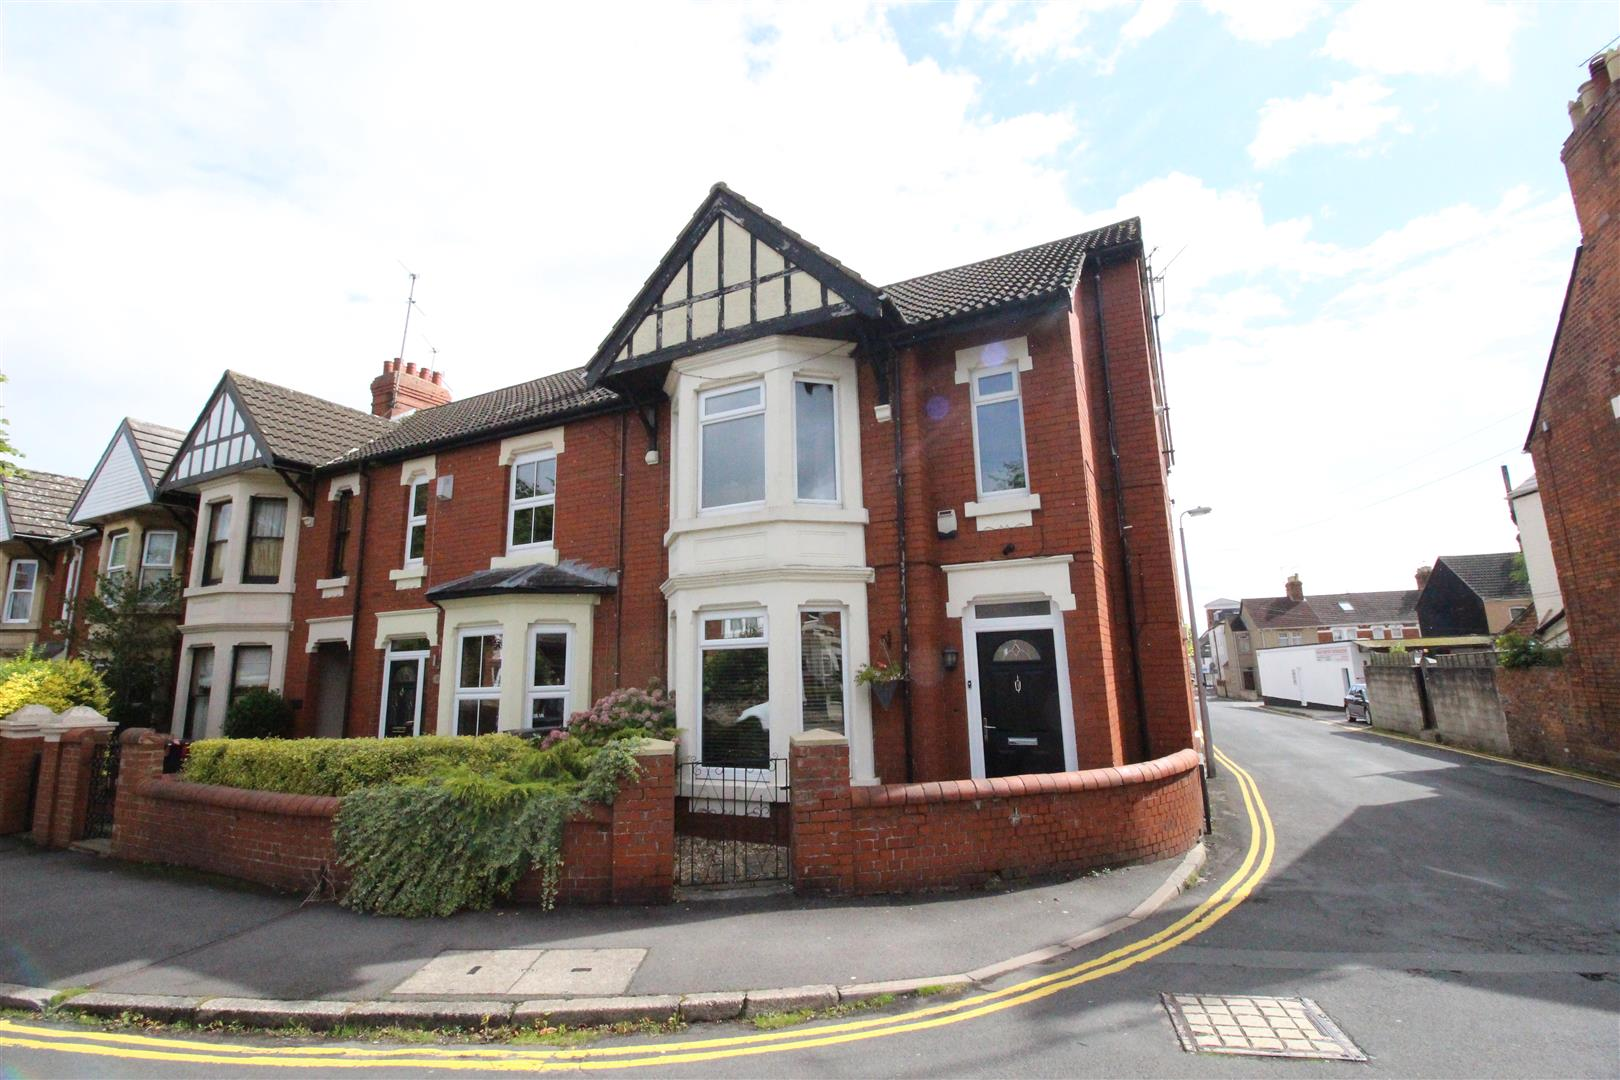 4 Bedrooms End Of Terrace House for sale in Avenue Road, Old Town, Swindon